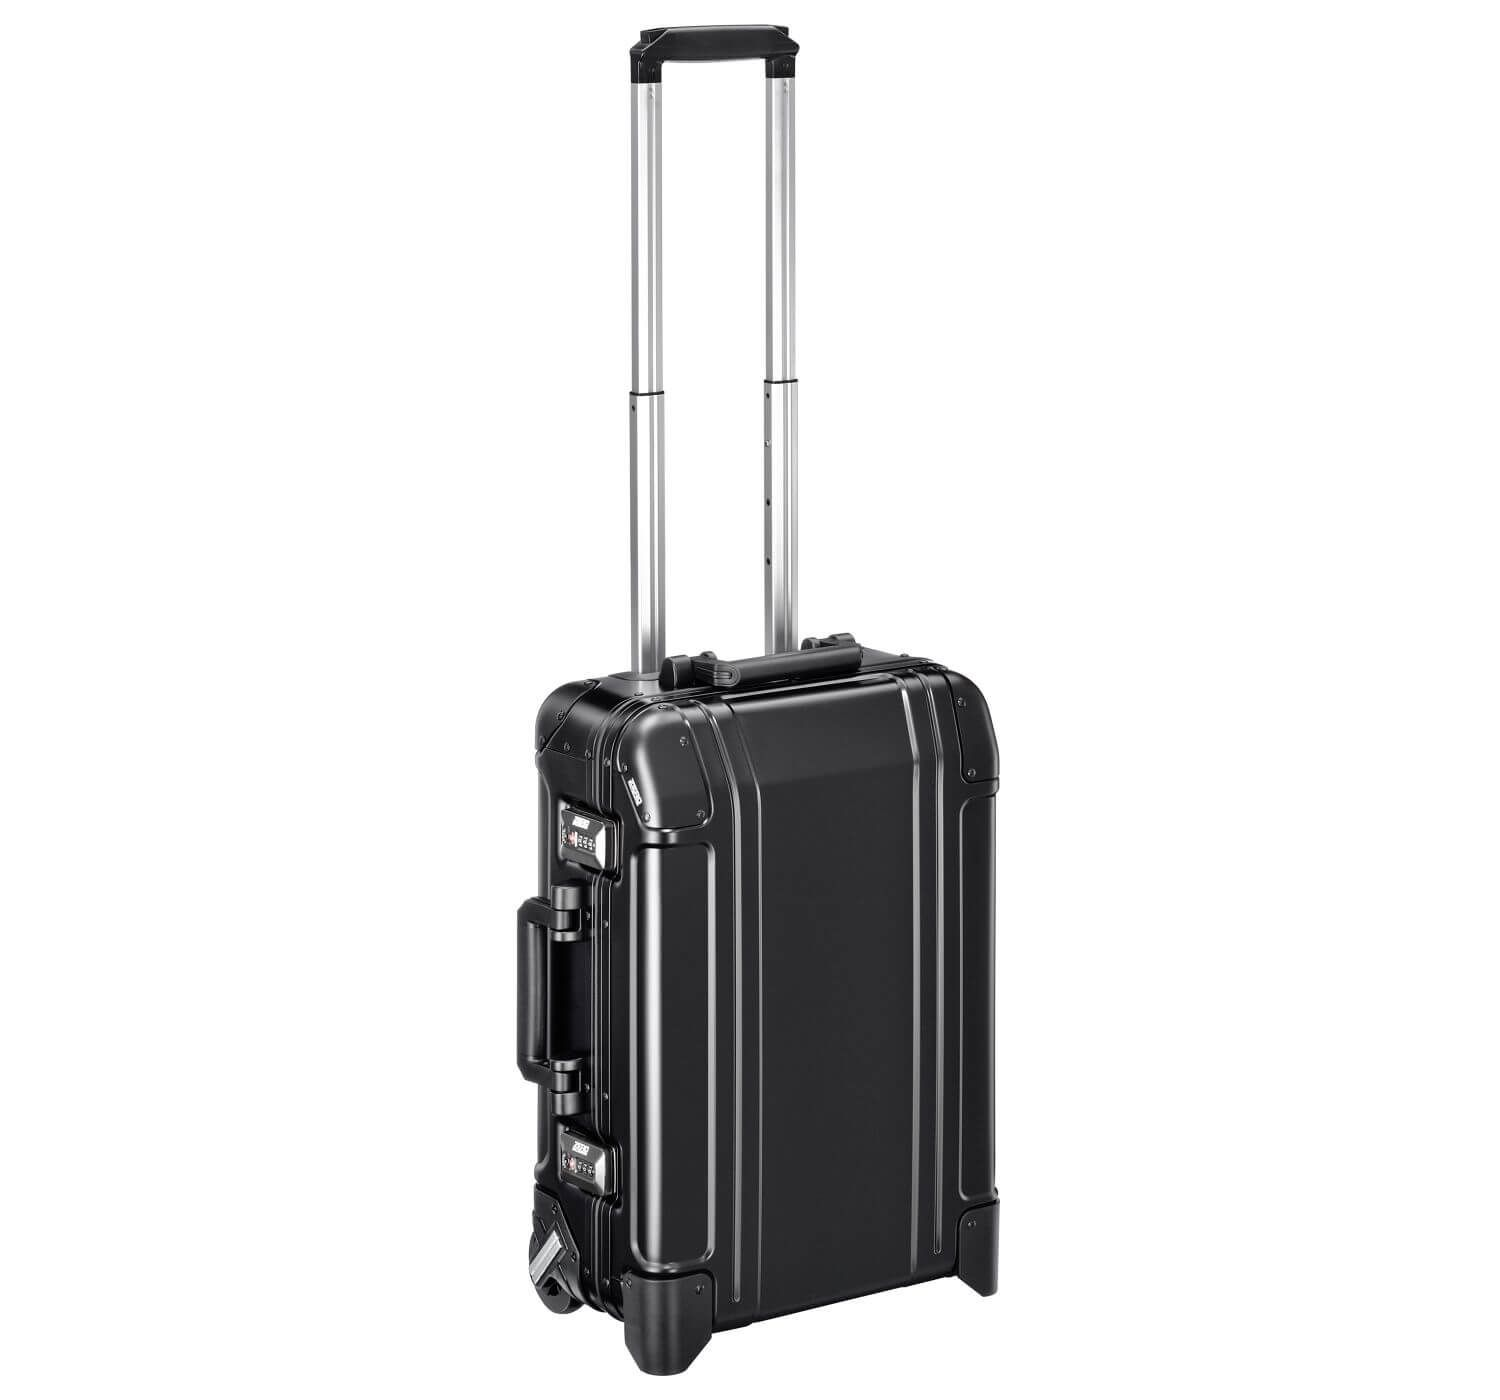 Geo Aluminum 2.0 - Carry-on 2-Wheel Travel Case - фото 1